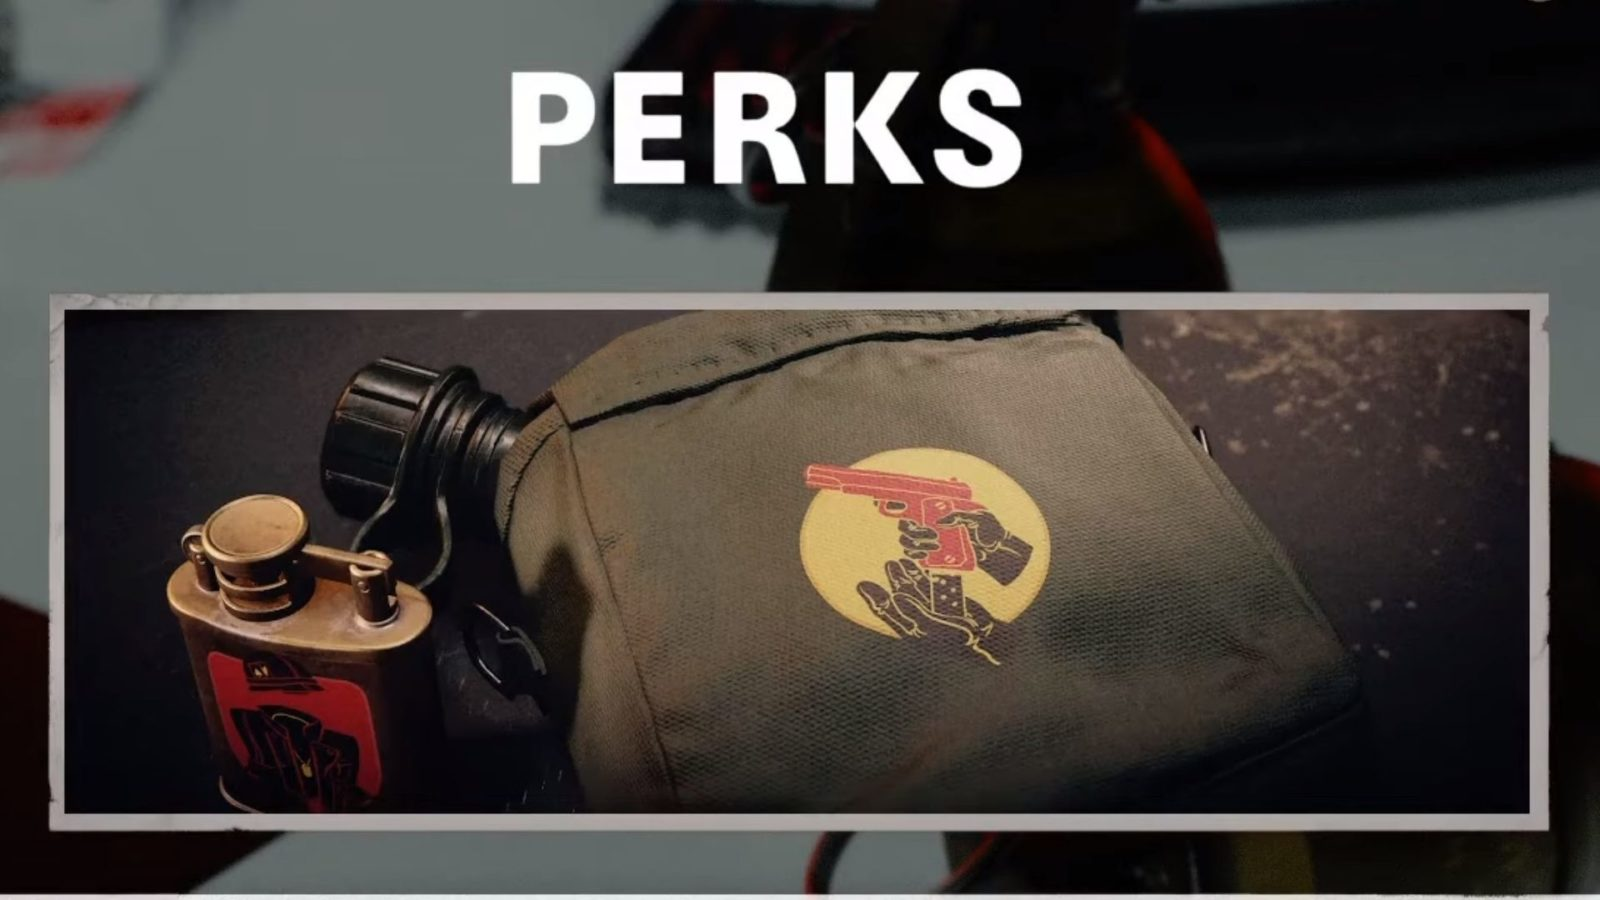 best perks in cod bocw featured image